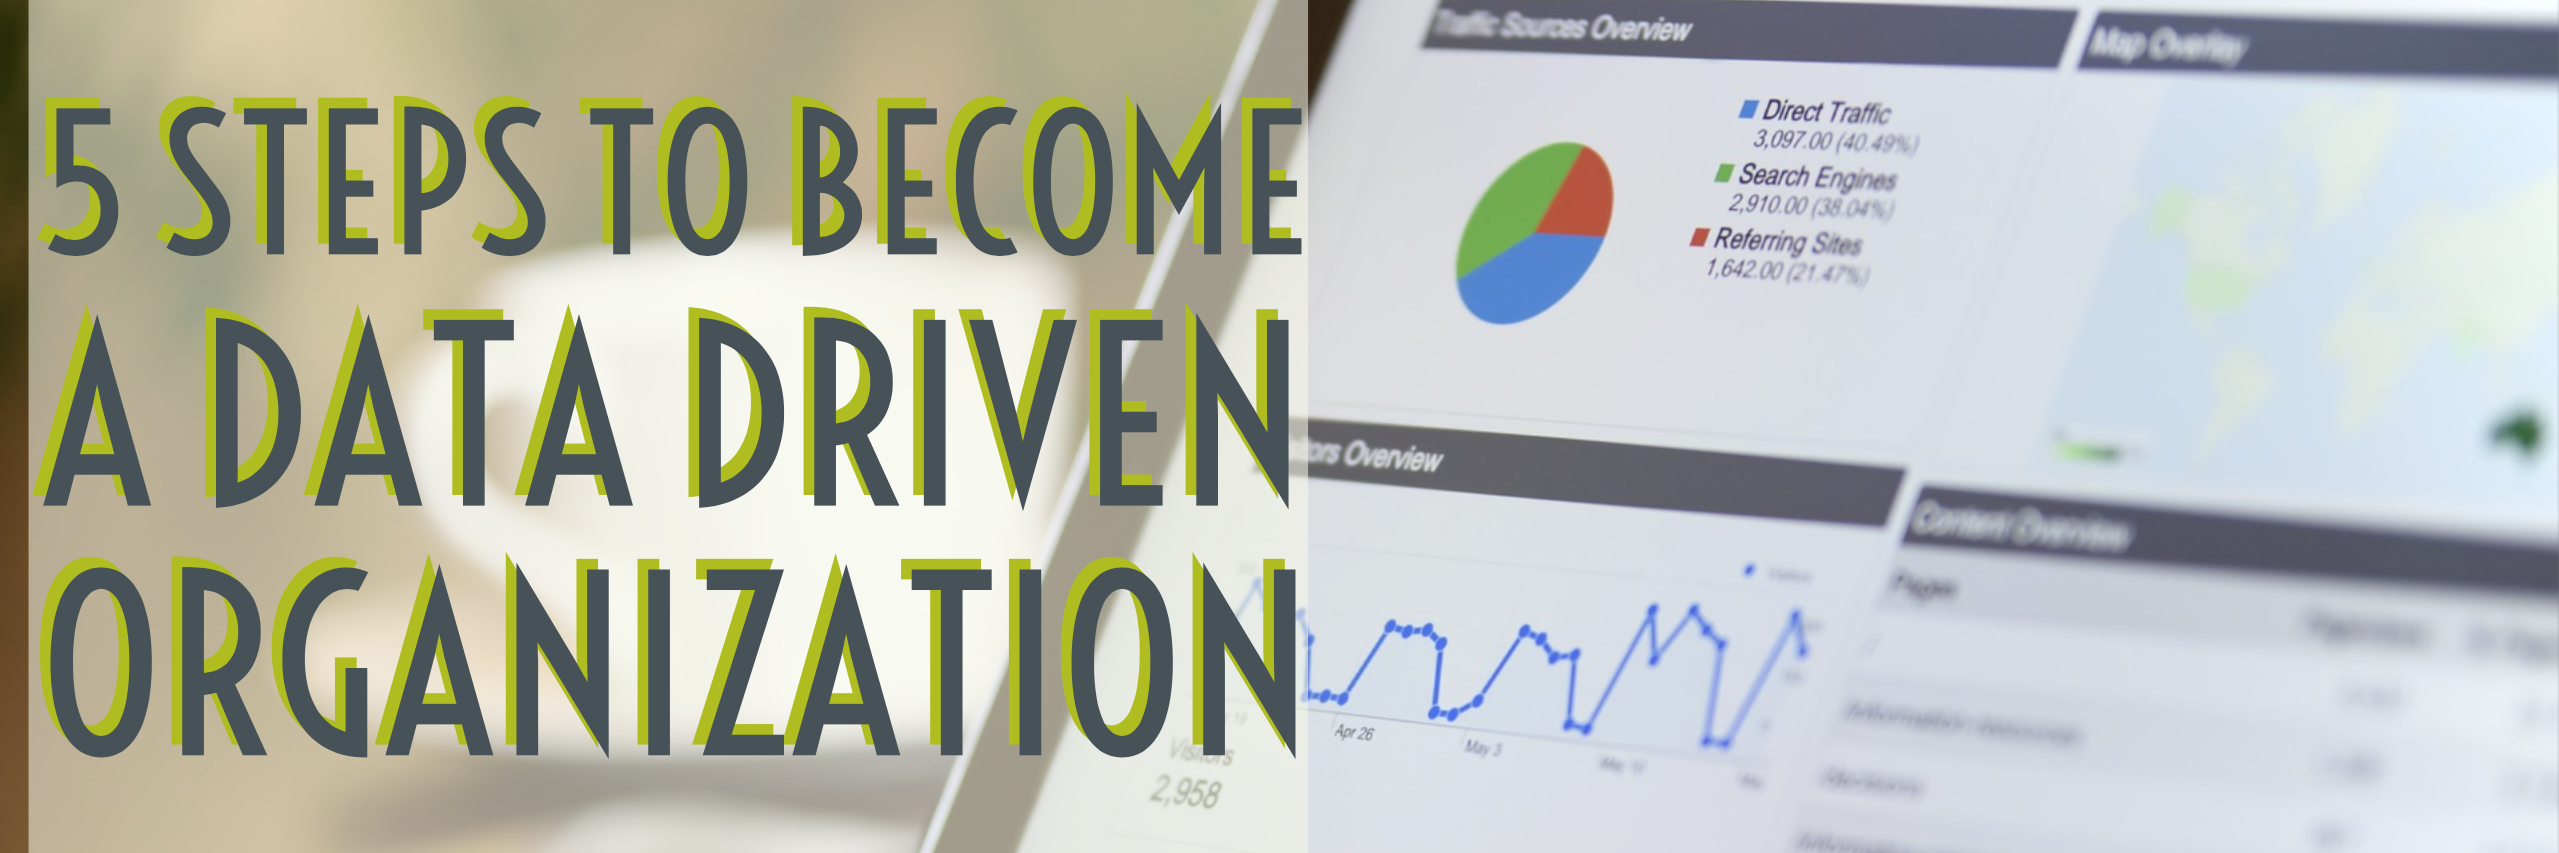 5 steps to become a data driven organization